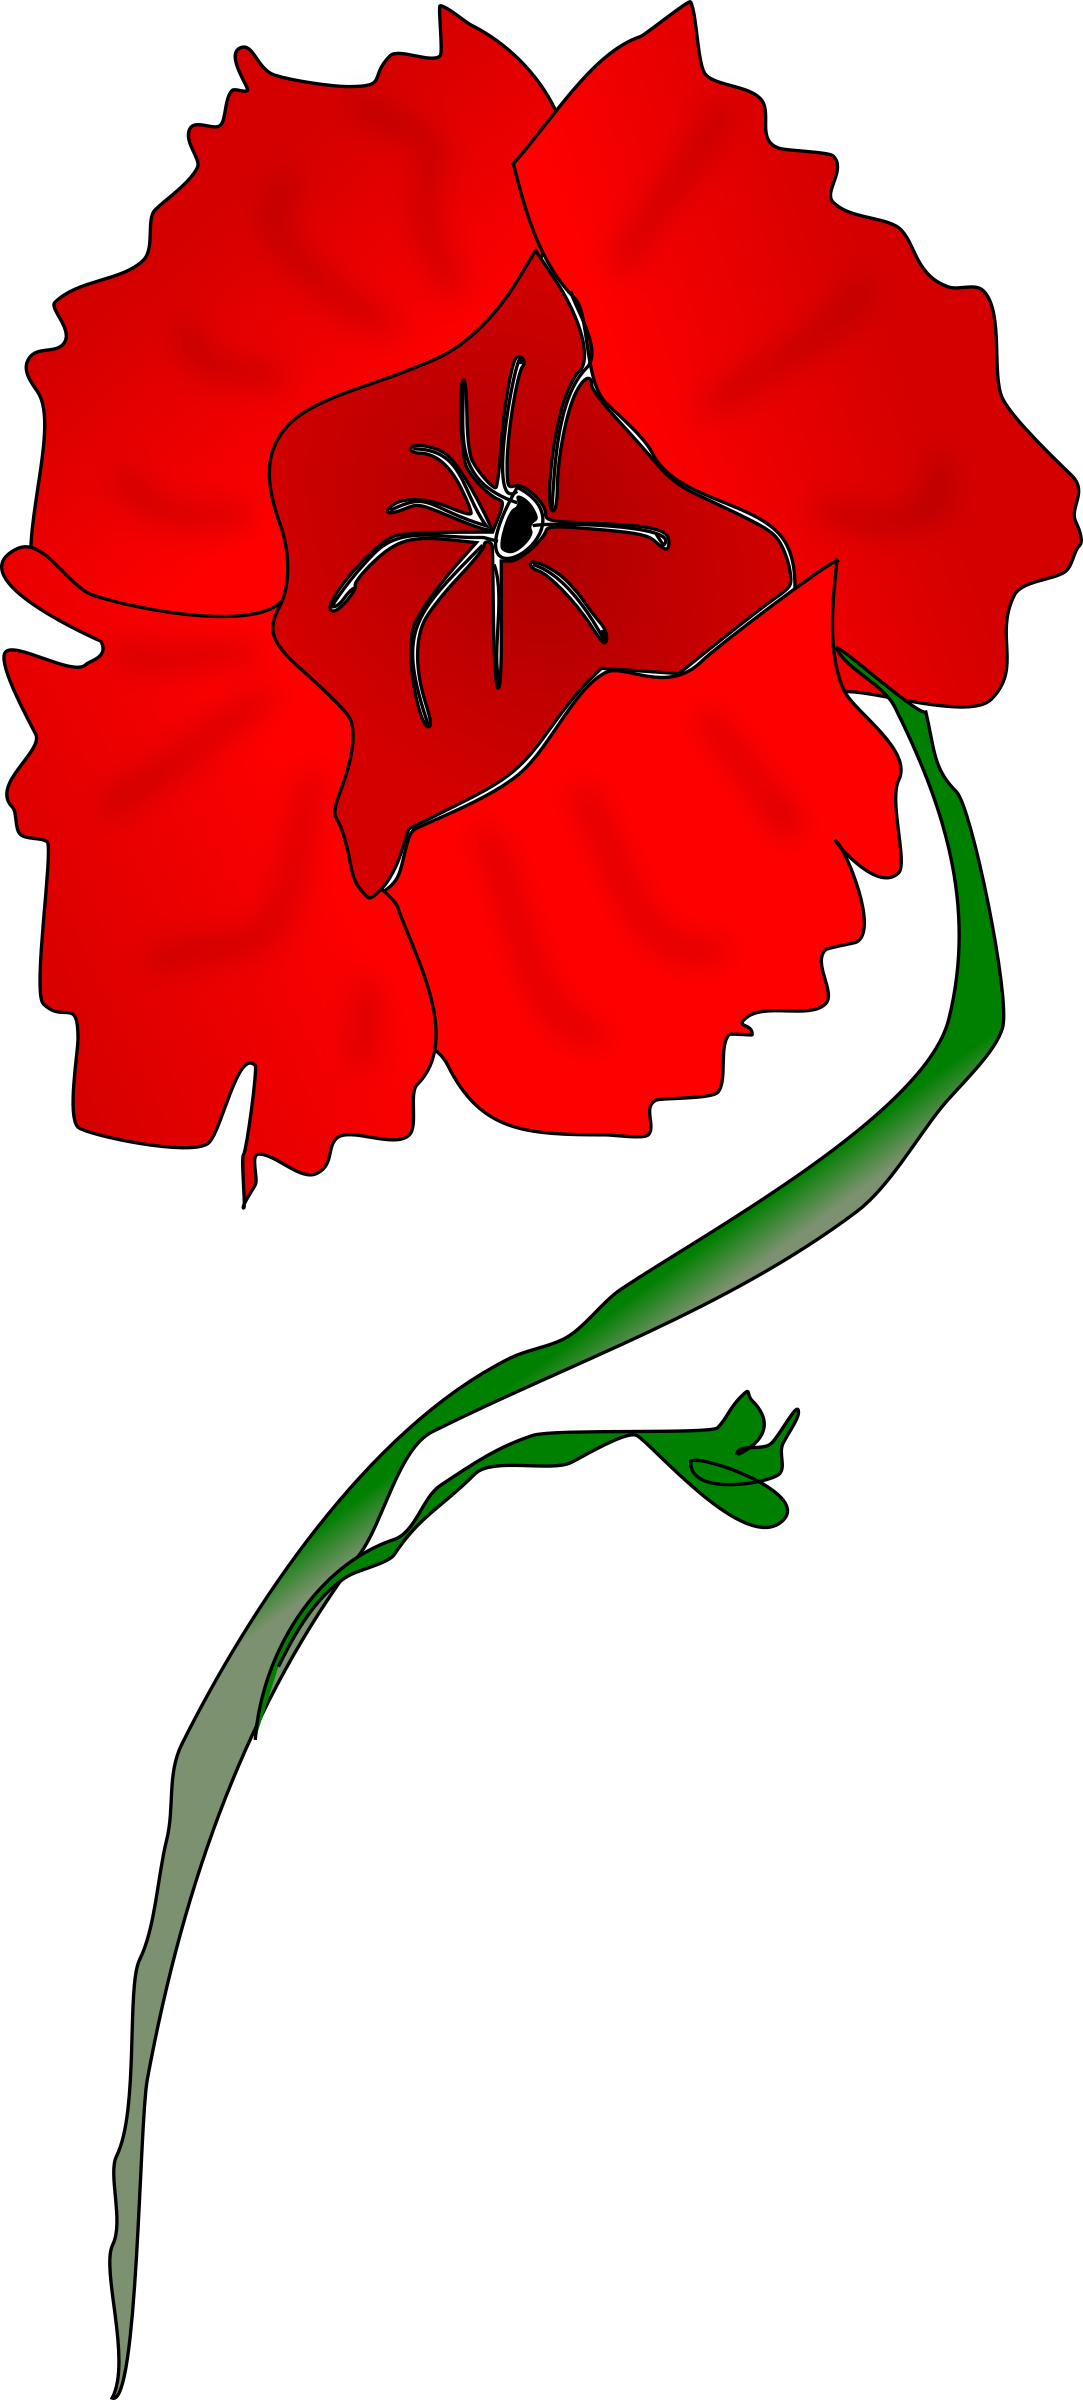 Poppy clipart red poppy. Freeform big image png